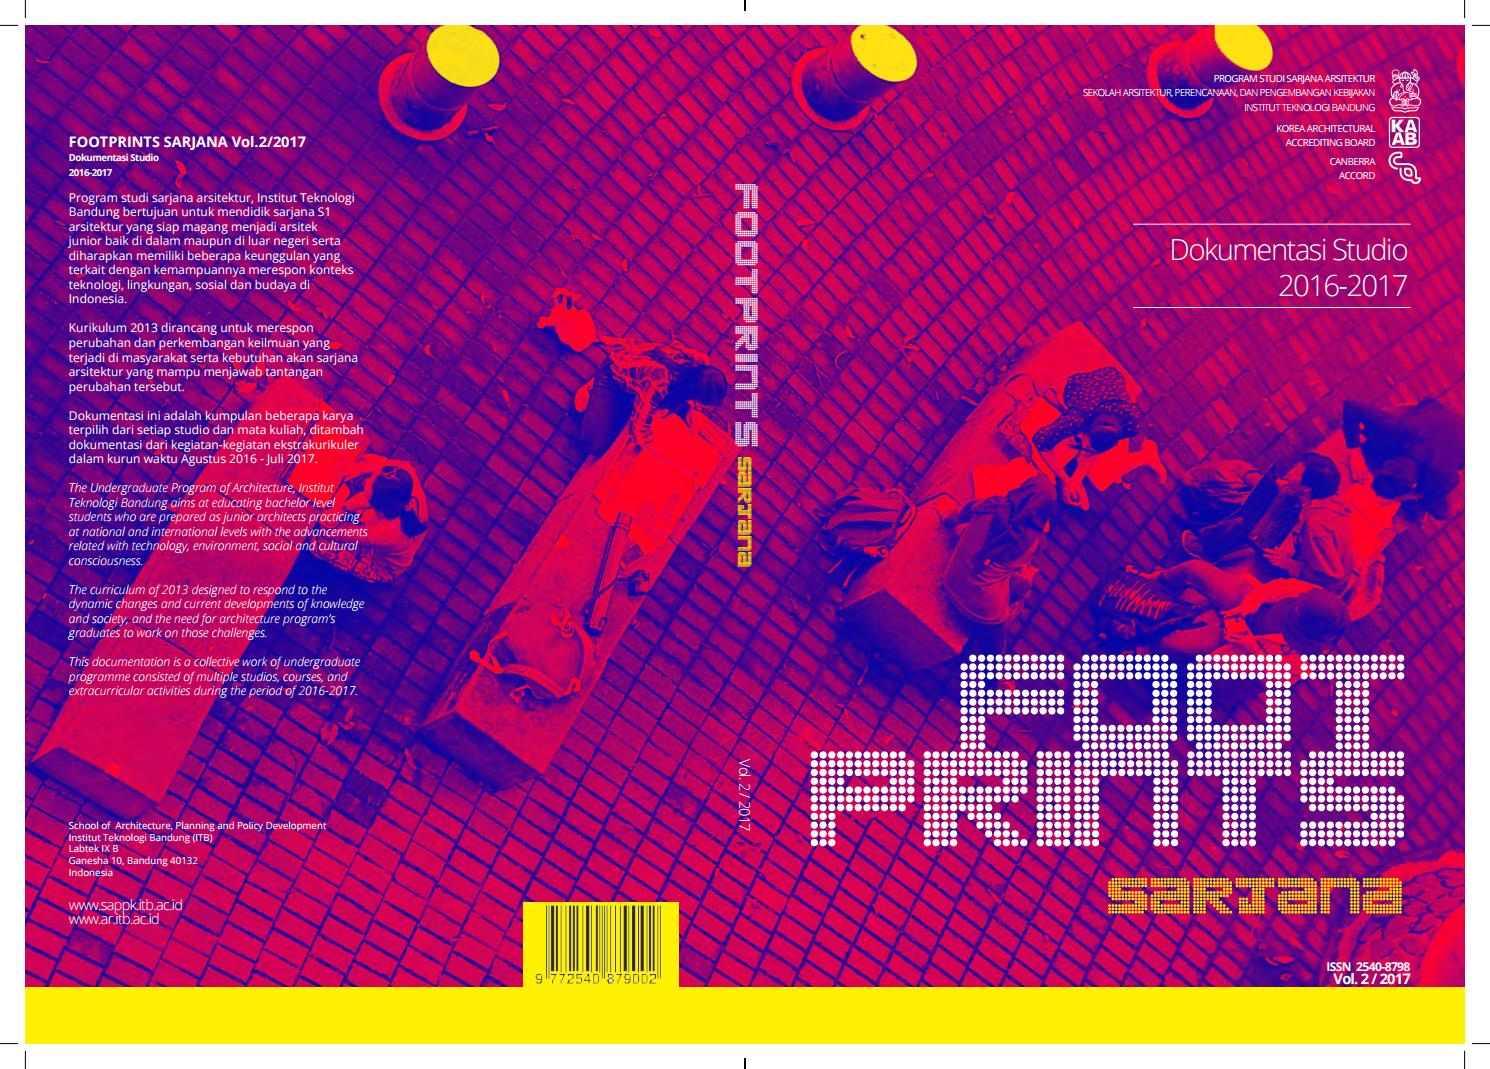 Footprint Vol 2 2017 By Unit Publikasi Program Studi